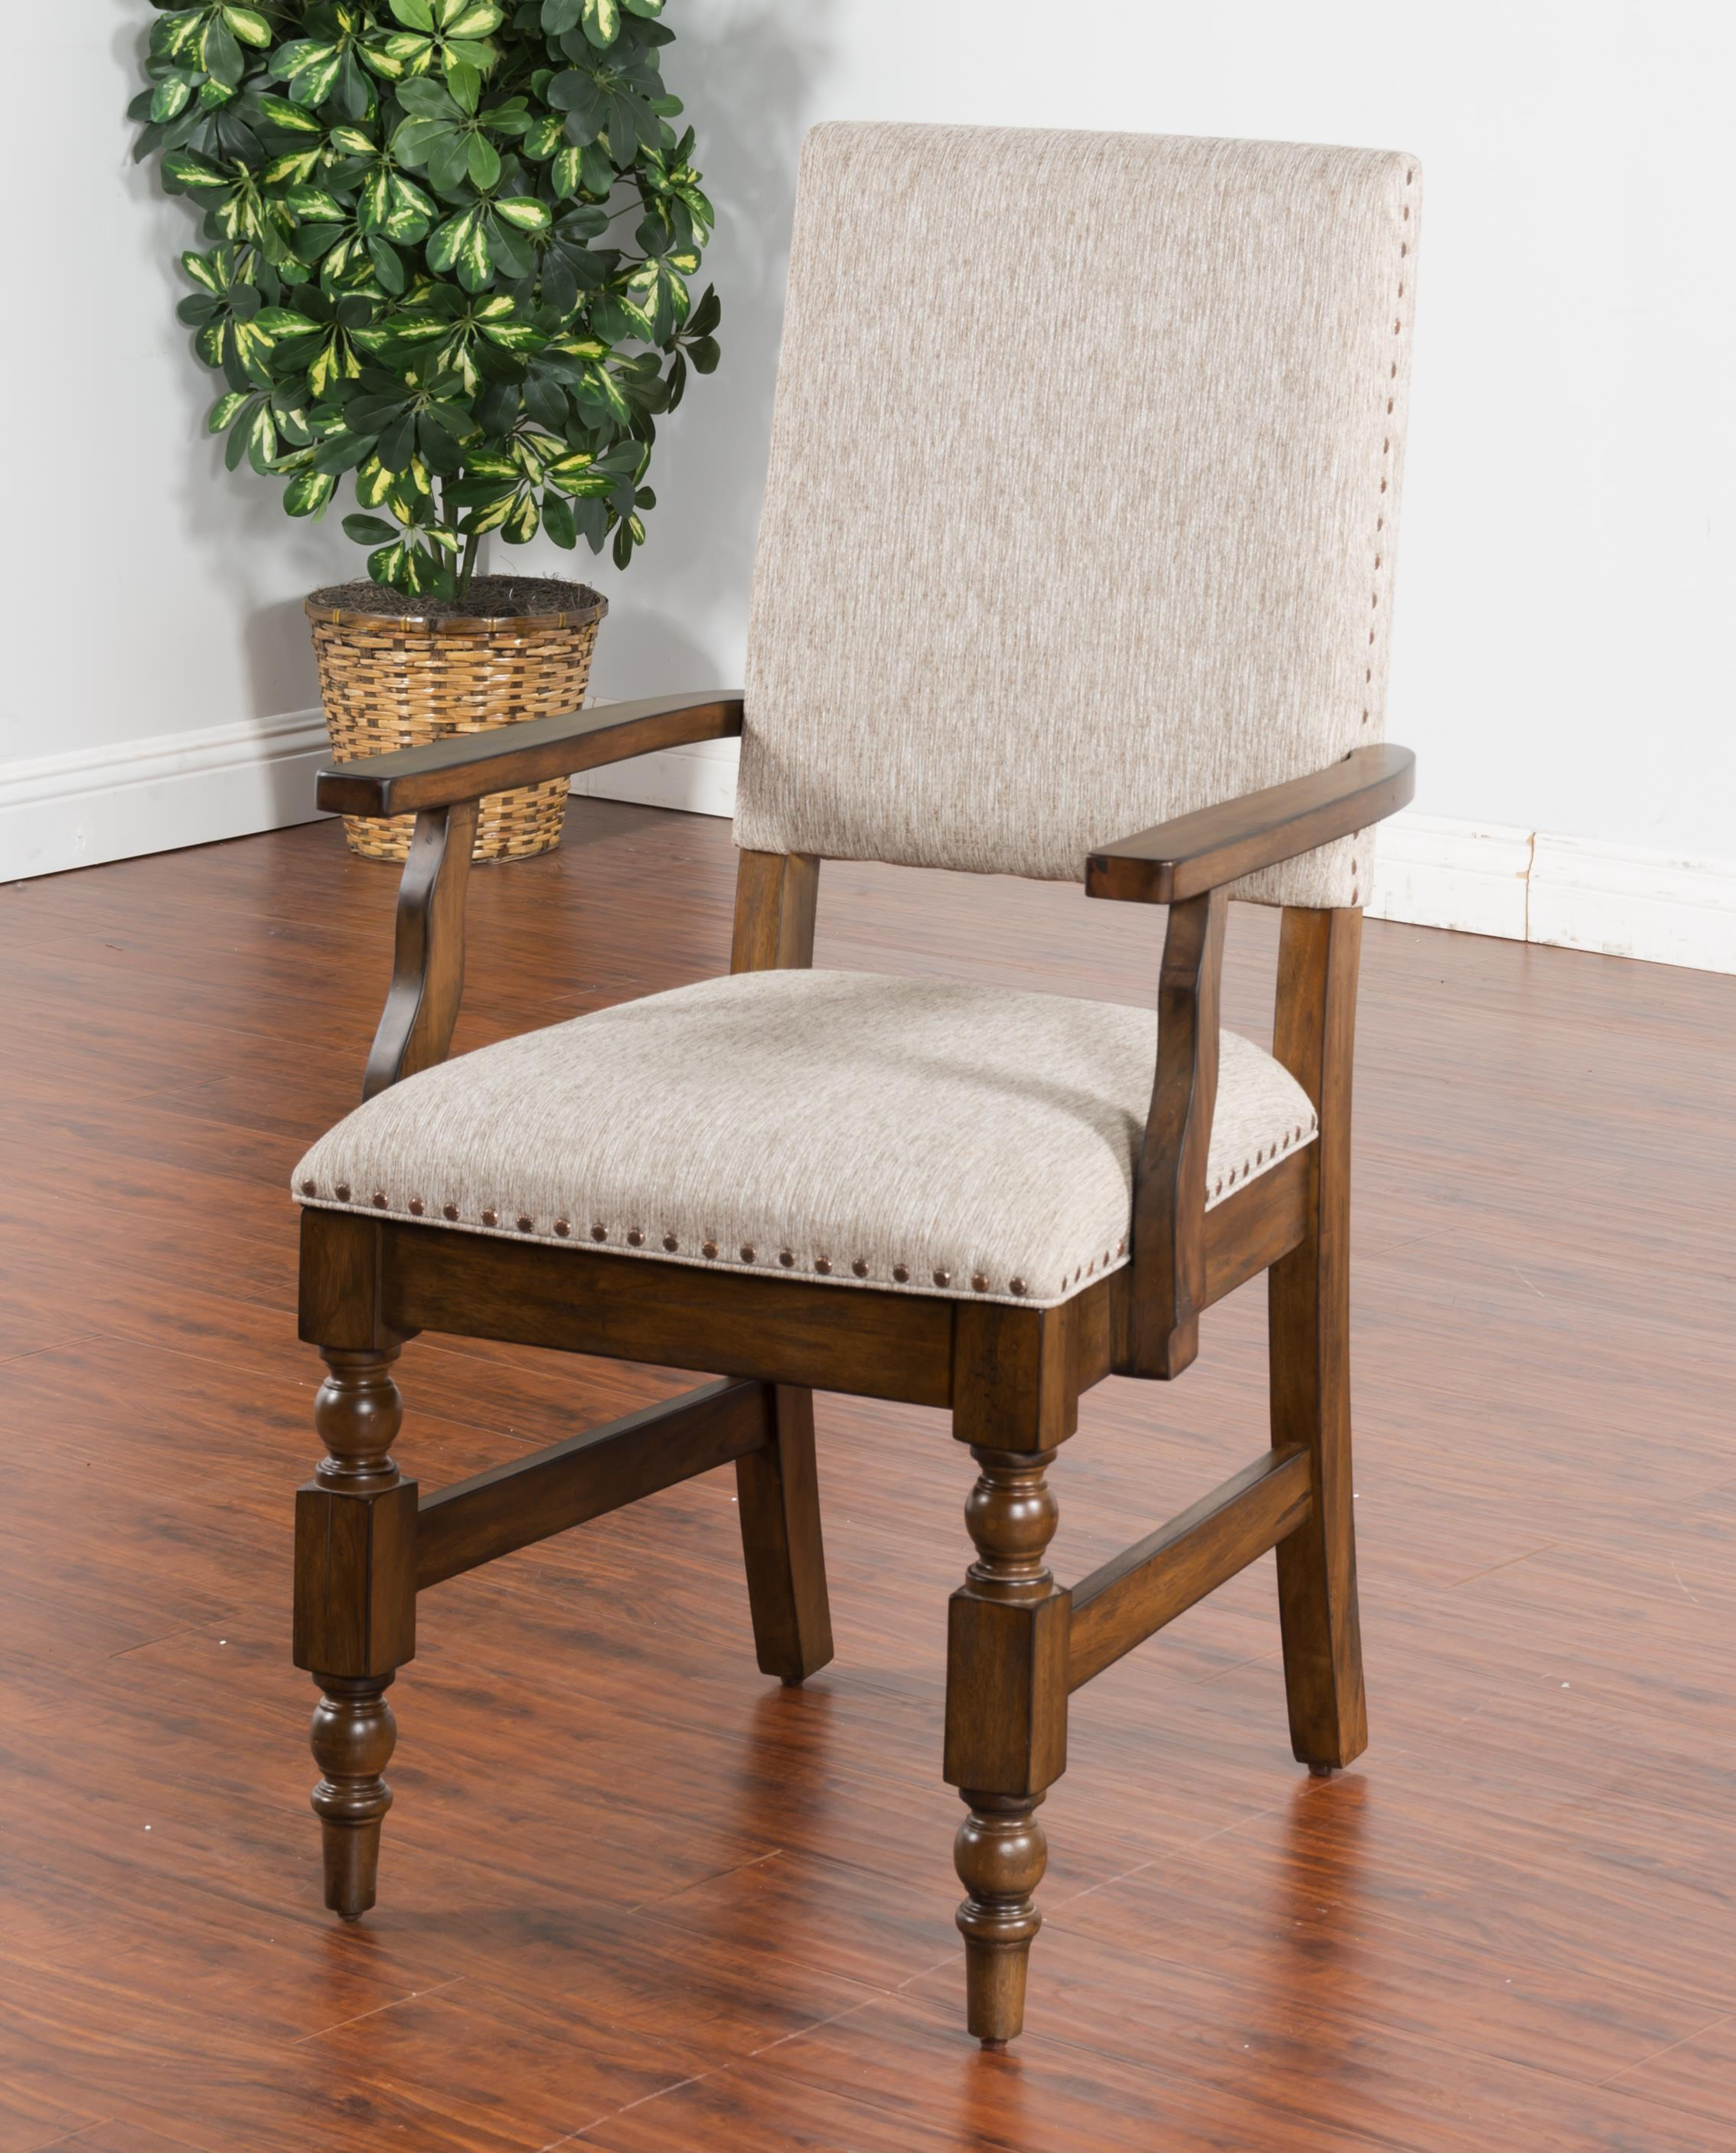 Morris Home Furnishings Shiloh Shiloh Arm Chair - Item Number: 338842443